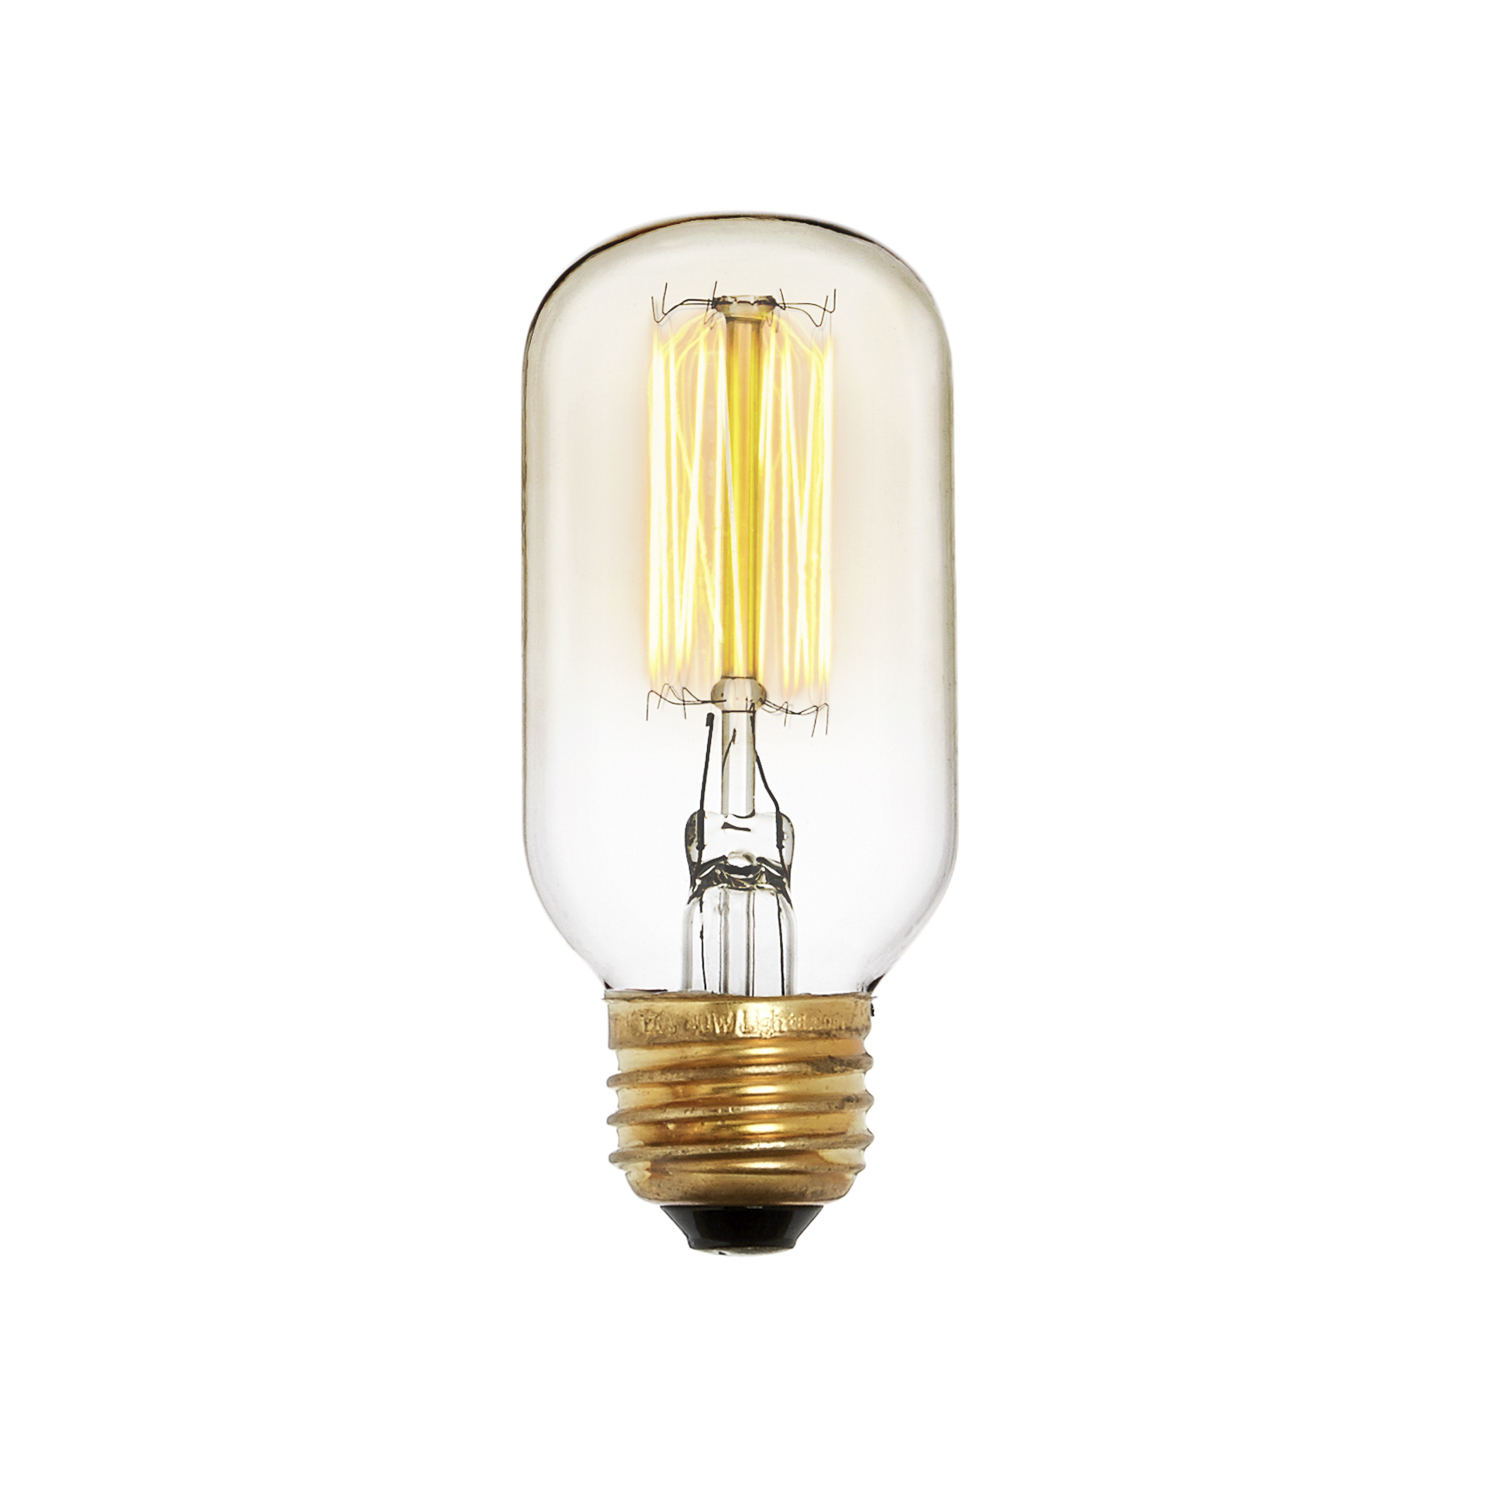 Lights.com Bulbs Edison Bulbs Williamsburg T14 Vintage Bulbs 40W (E26) - Single